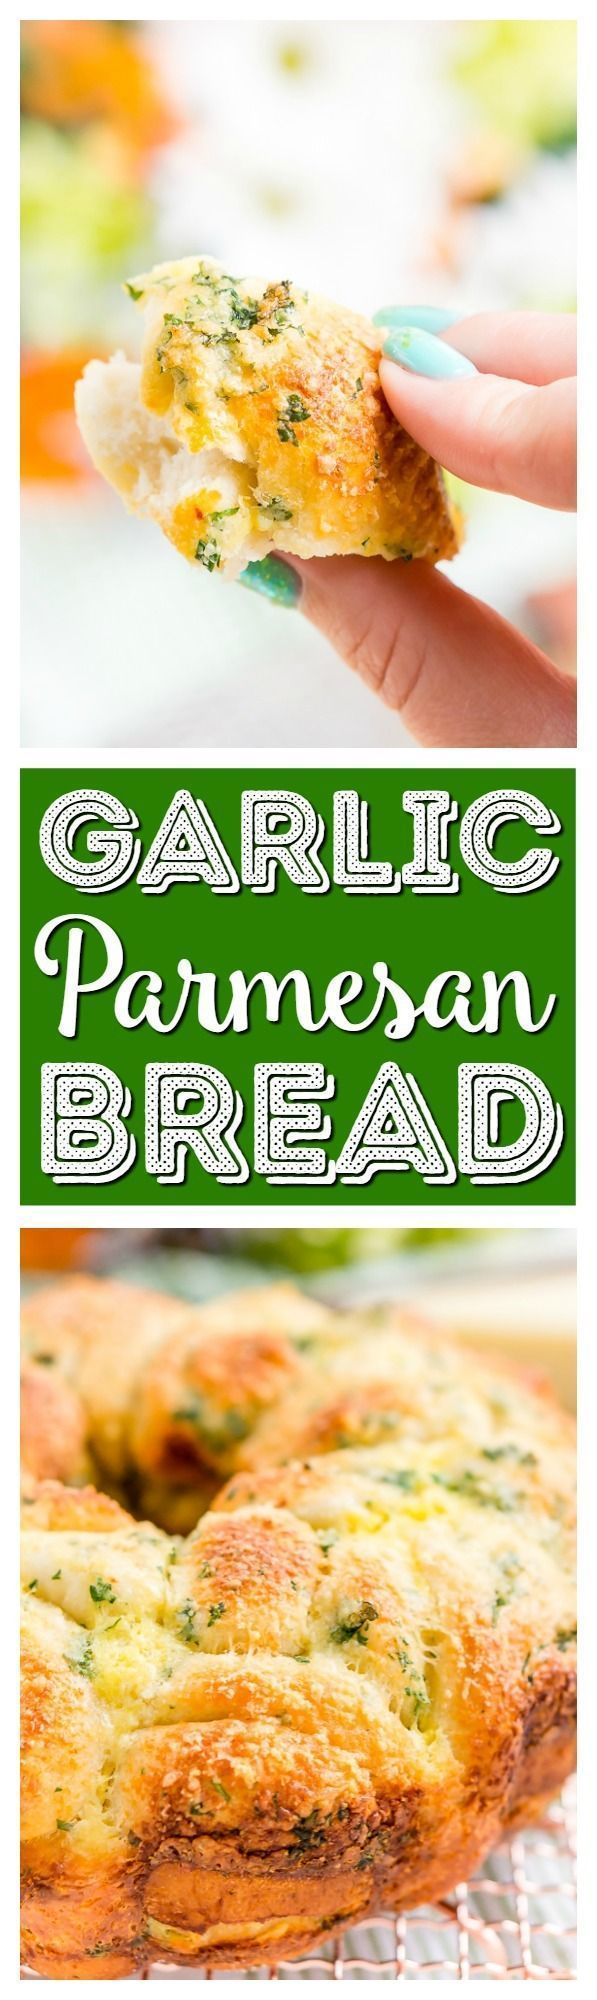 This Garlic Parmesan Monkey Bread is so easy to make and packs tons of flavor! Perfect as a savory side for brunch and dinner! via @sugarandsoulco